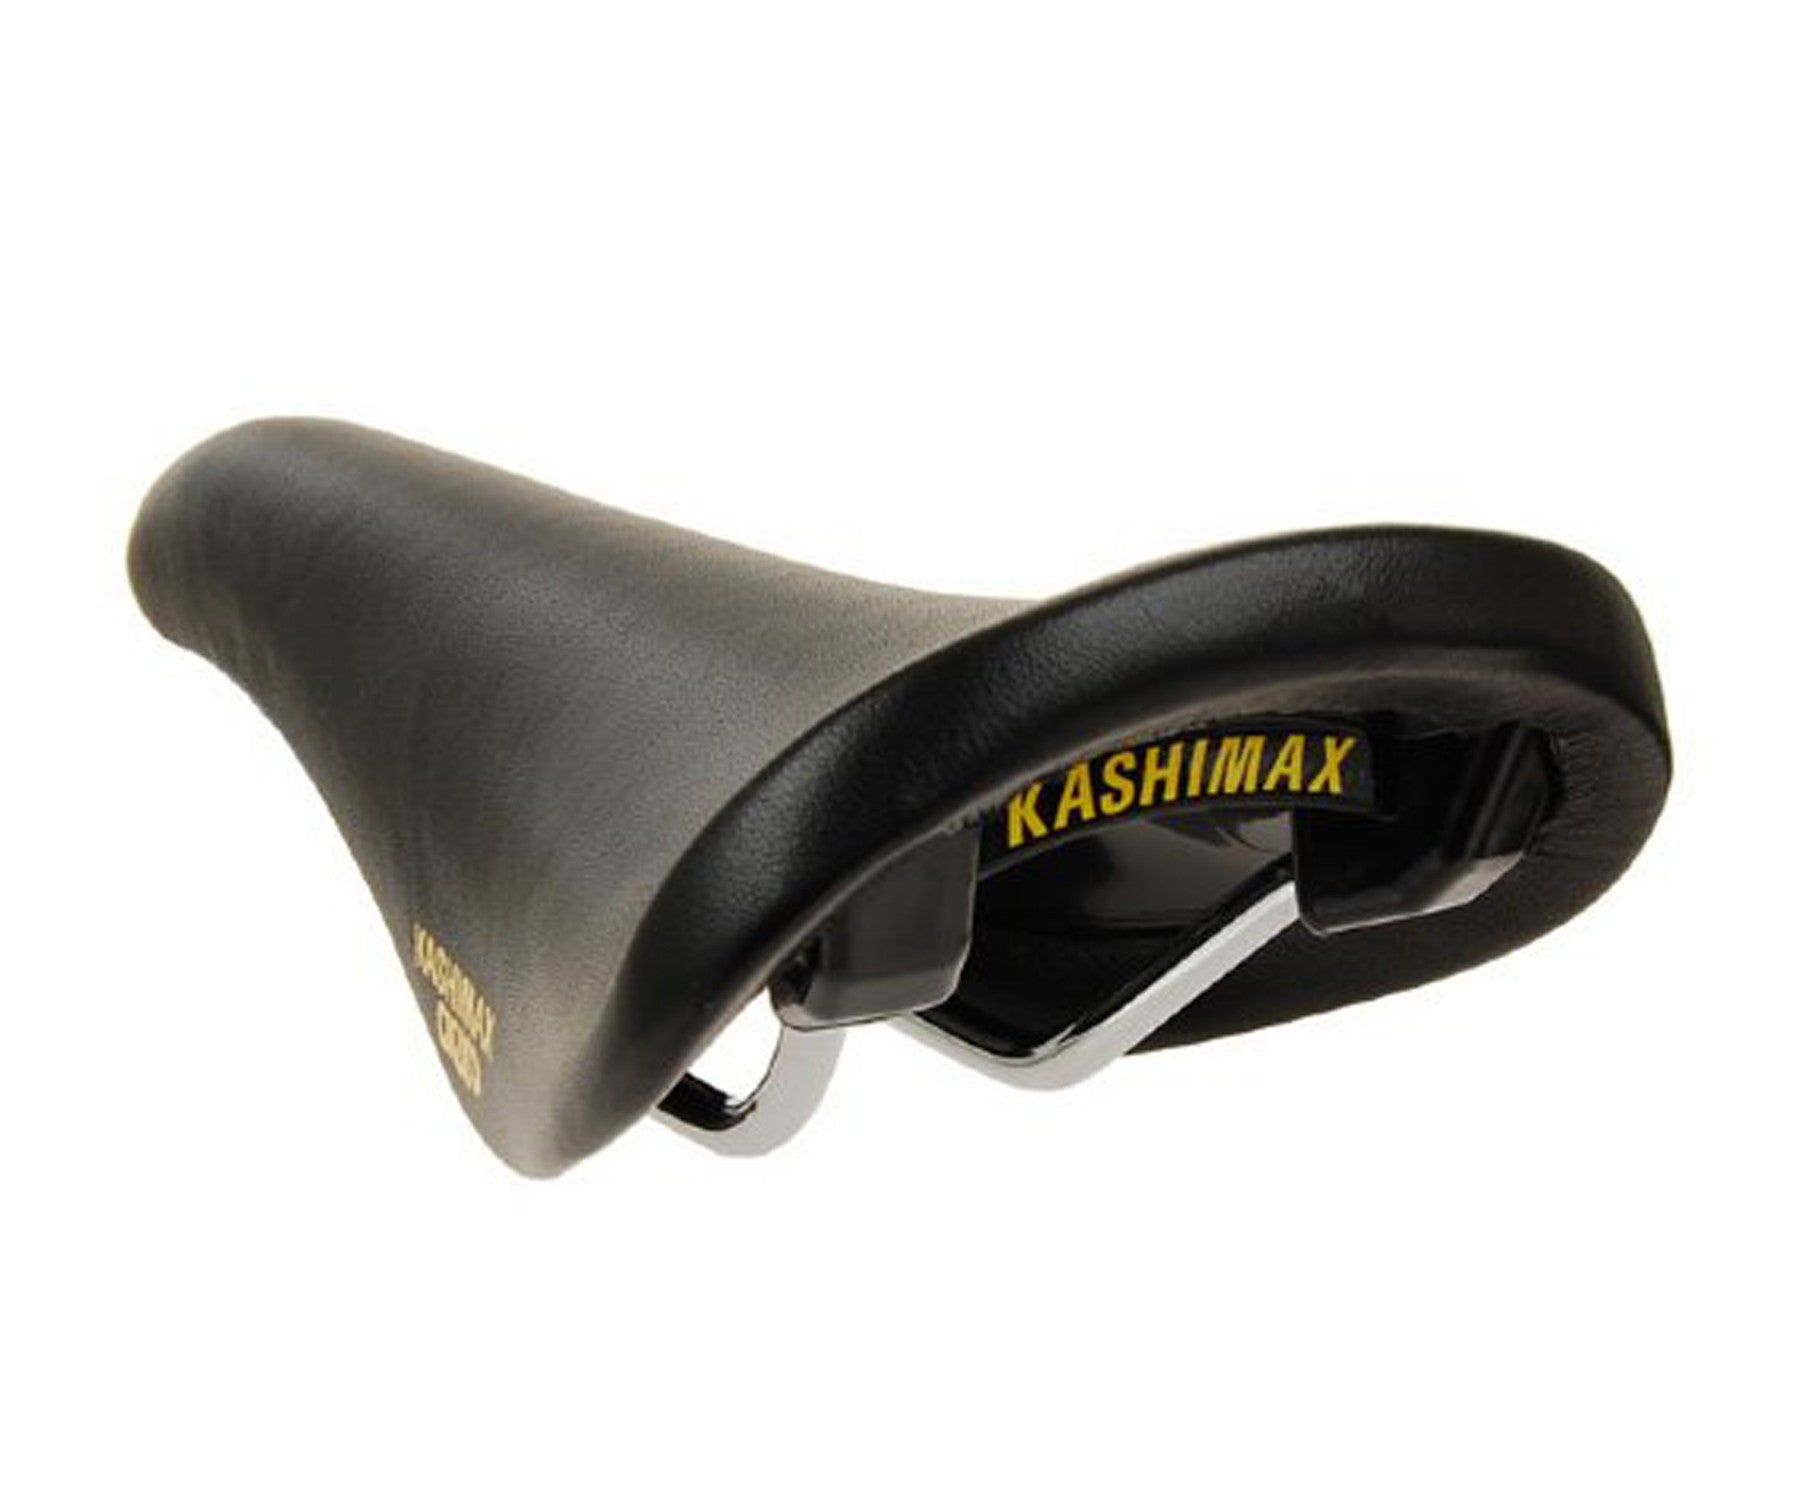 Kashimax Aero smooth saddle